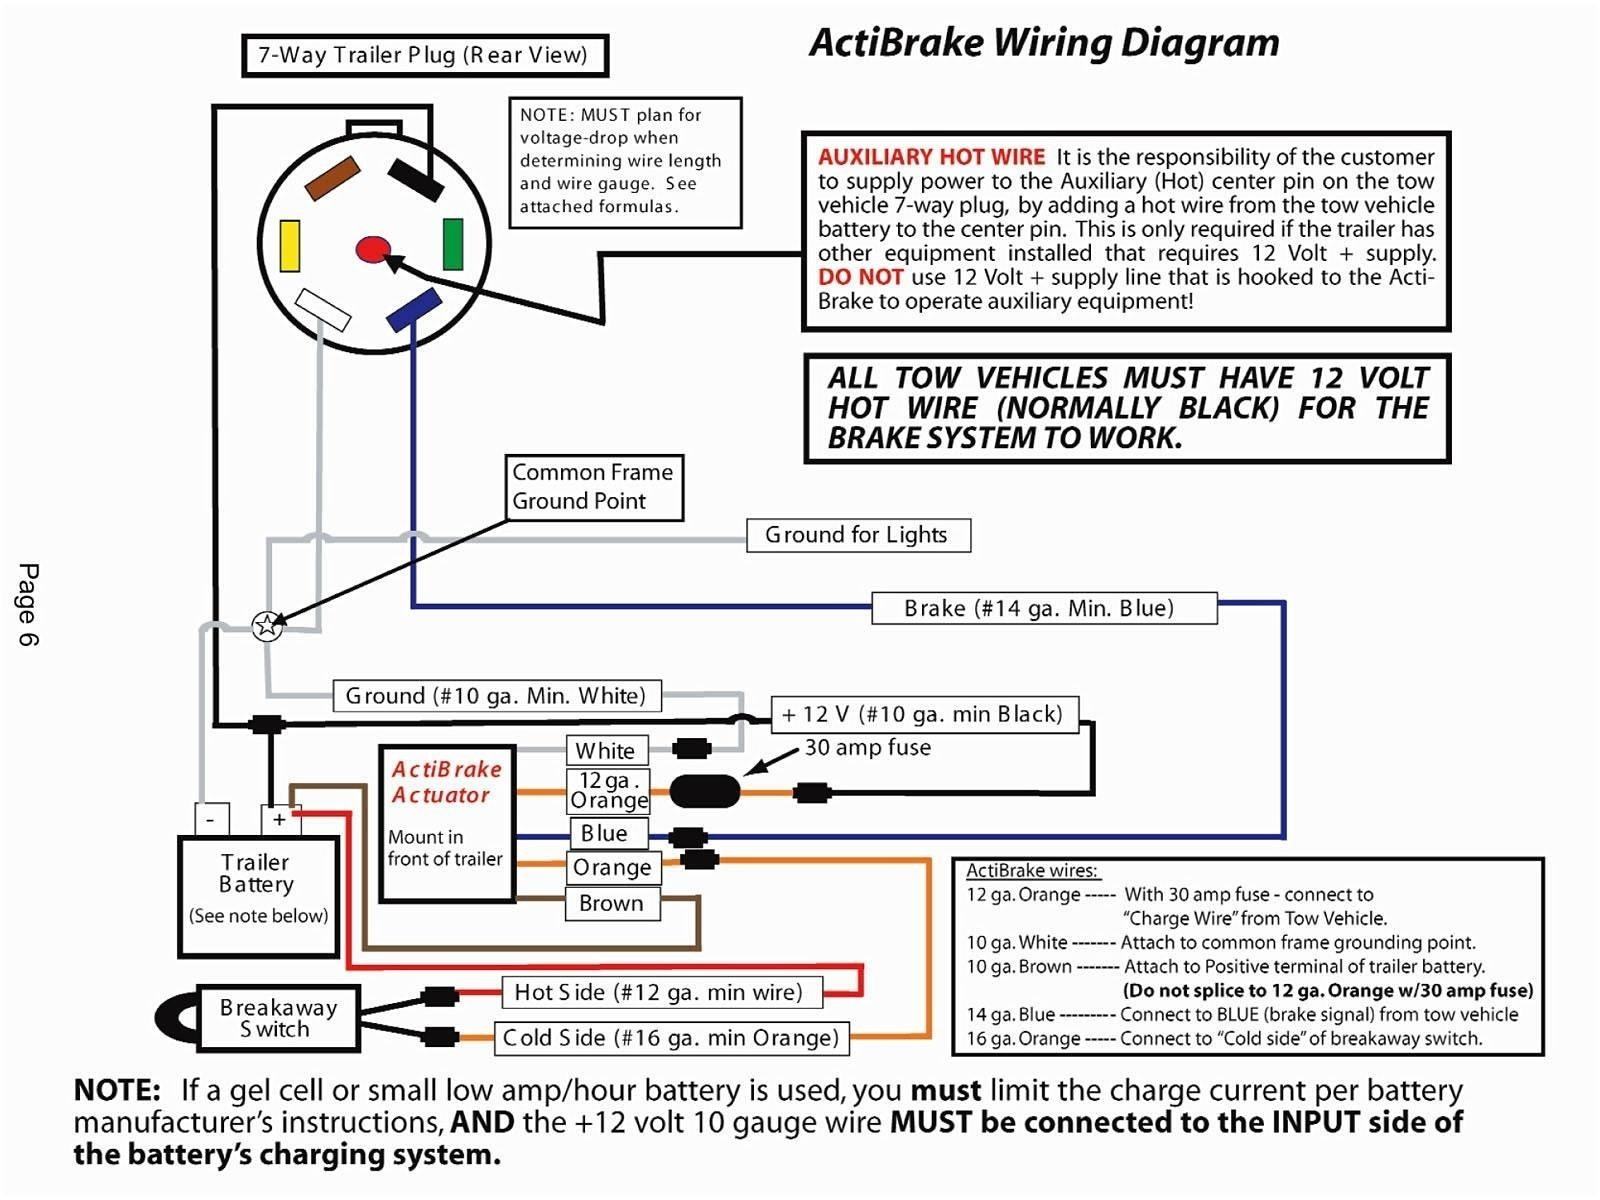 tow vehicle wiring diagram wiring diagrams best get tow vehicle wiring diagram trailer connector wiring diagram tow vehicle wiring diagram